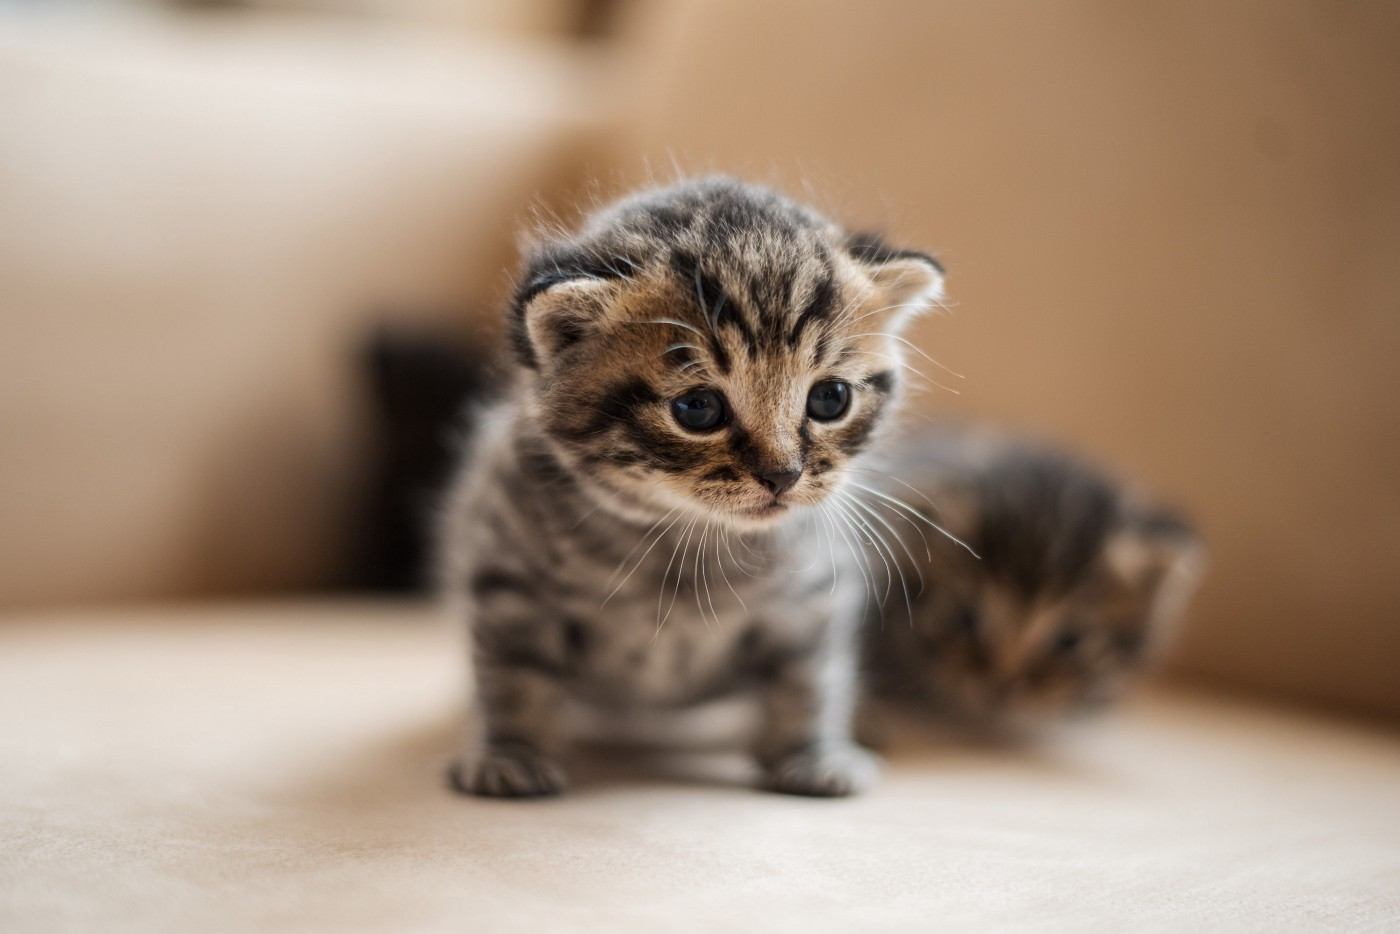 Tiny kitten looking worried, face in focus. Another fuzzy kitten behind on the same couch